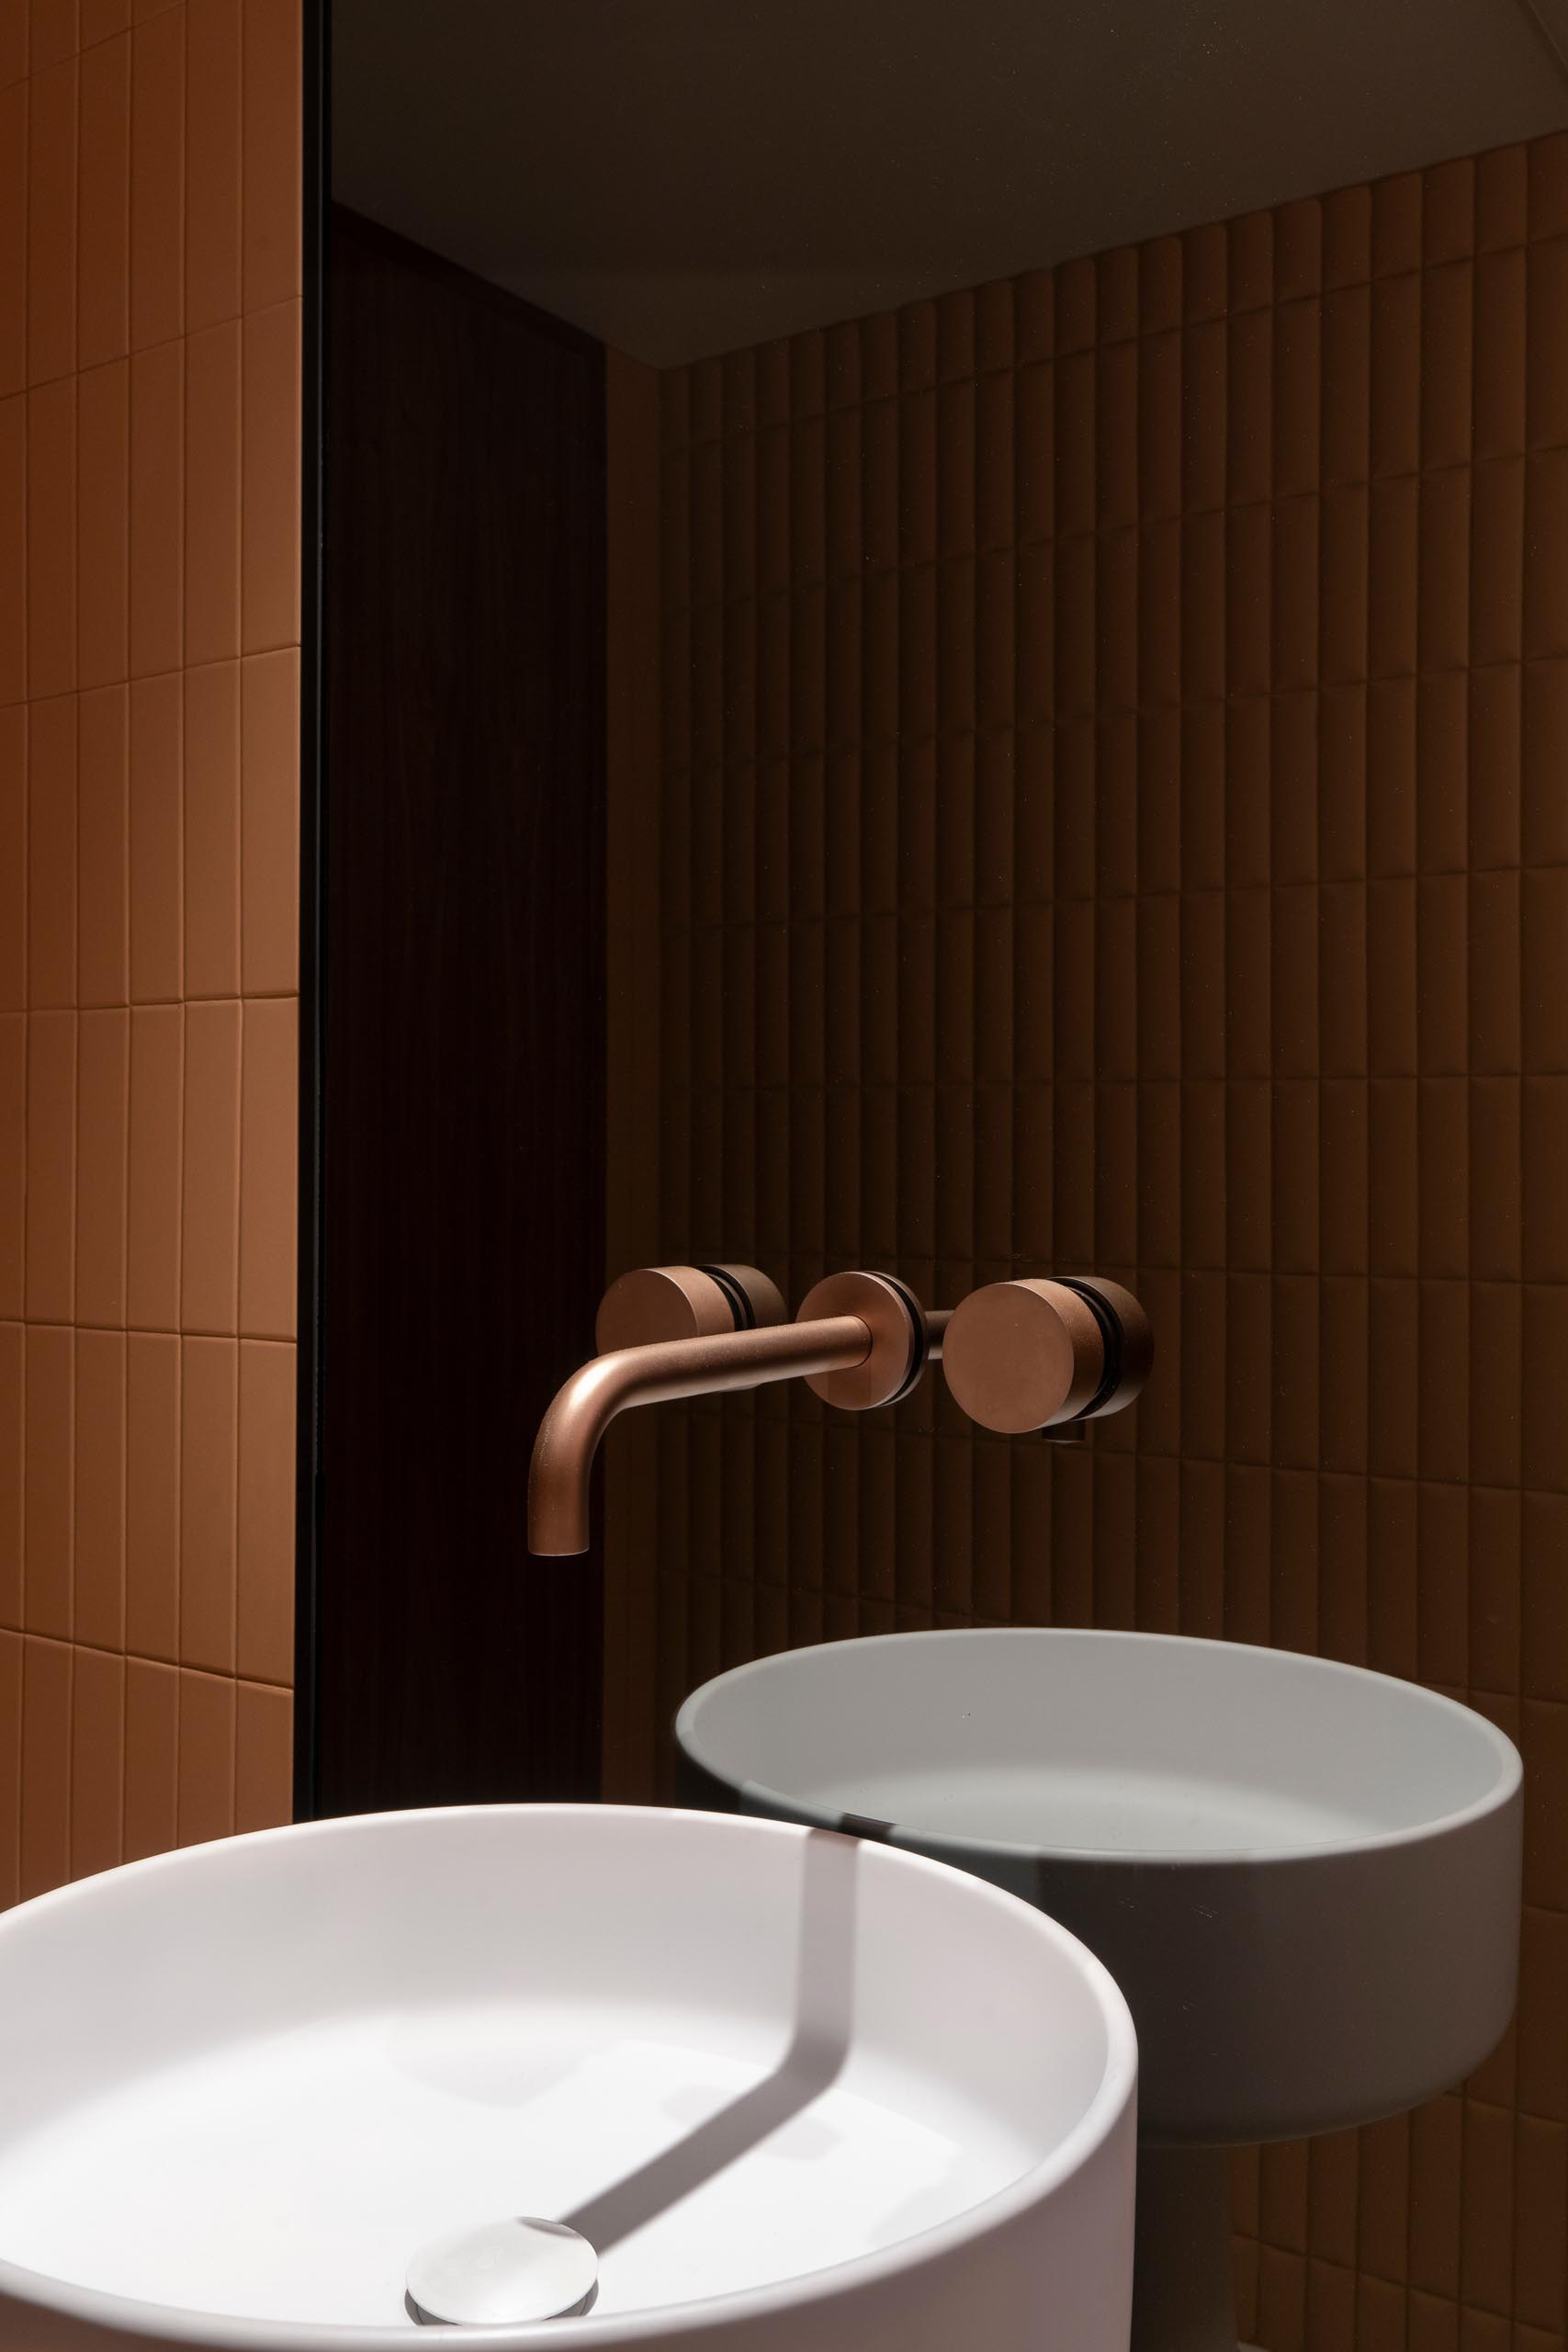 This modern powder room features smoked glass, copper faucets, Italian pedestal washbasin, and terracotta ceramics reminiscent of upholstered leather create a chic appearance.